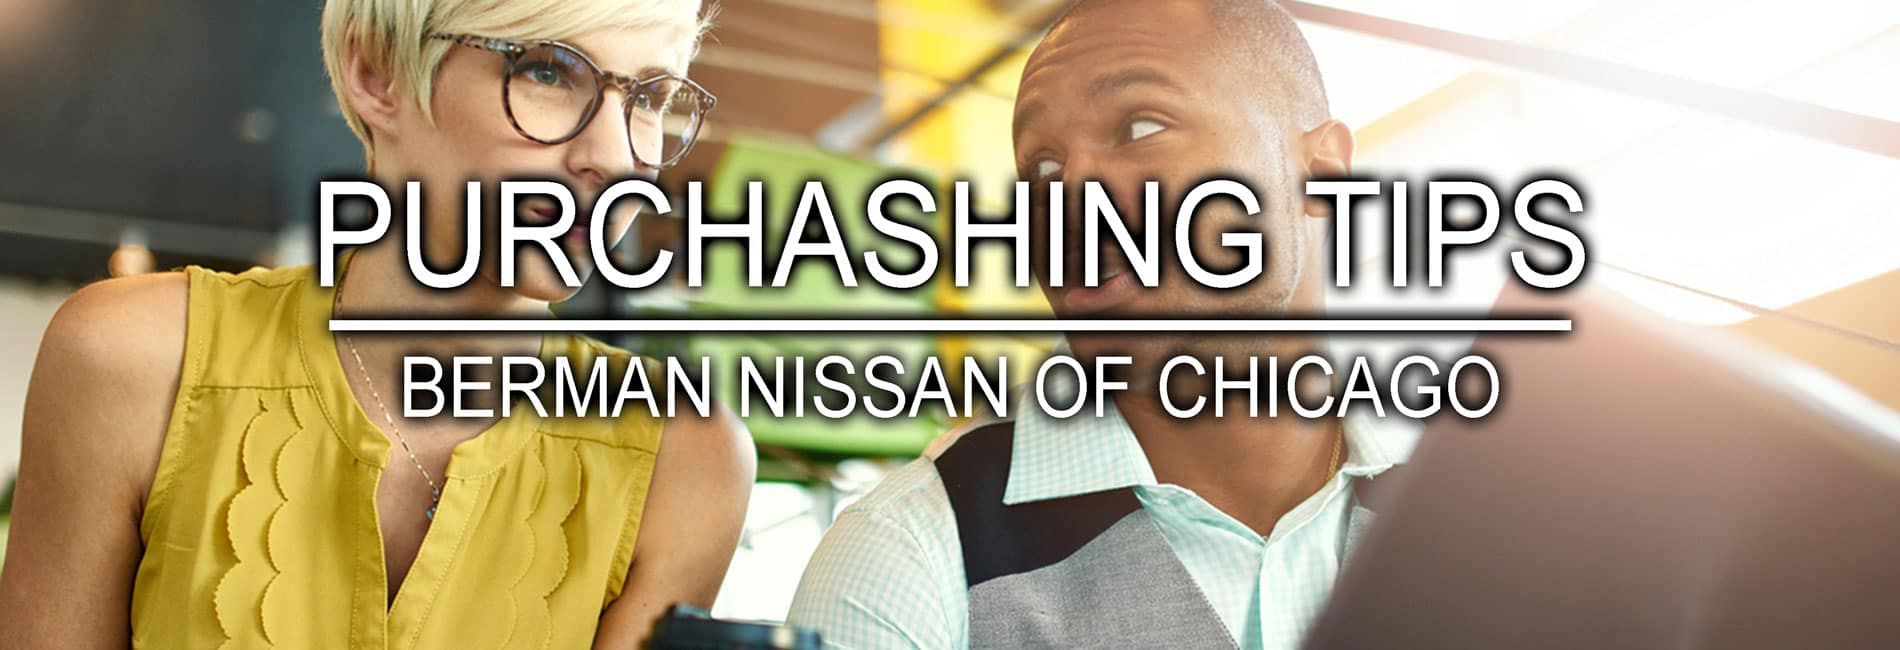 Vehicle Purchasing Tips from Berman Nissan of Chicago